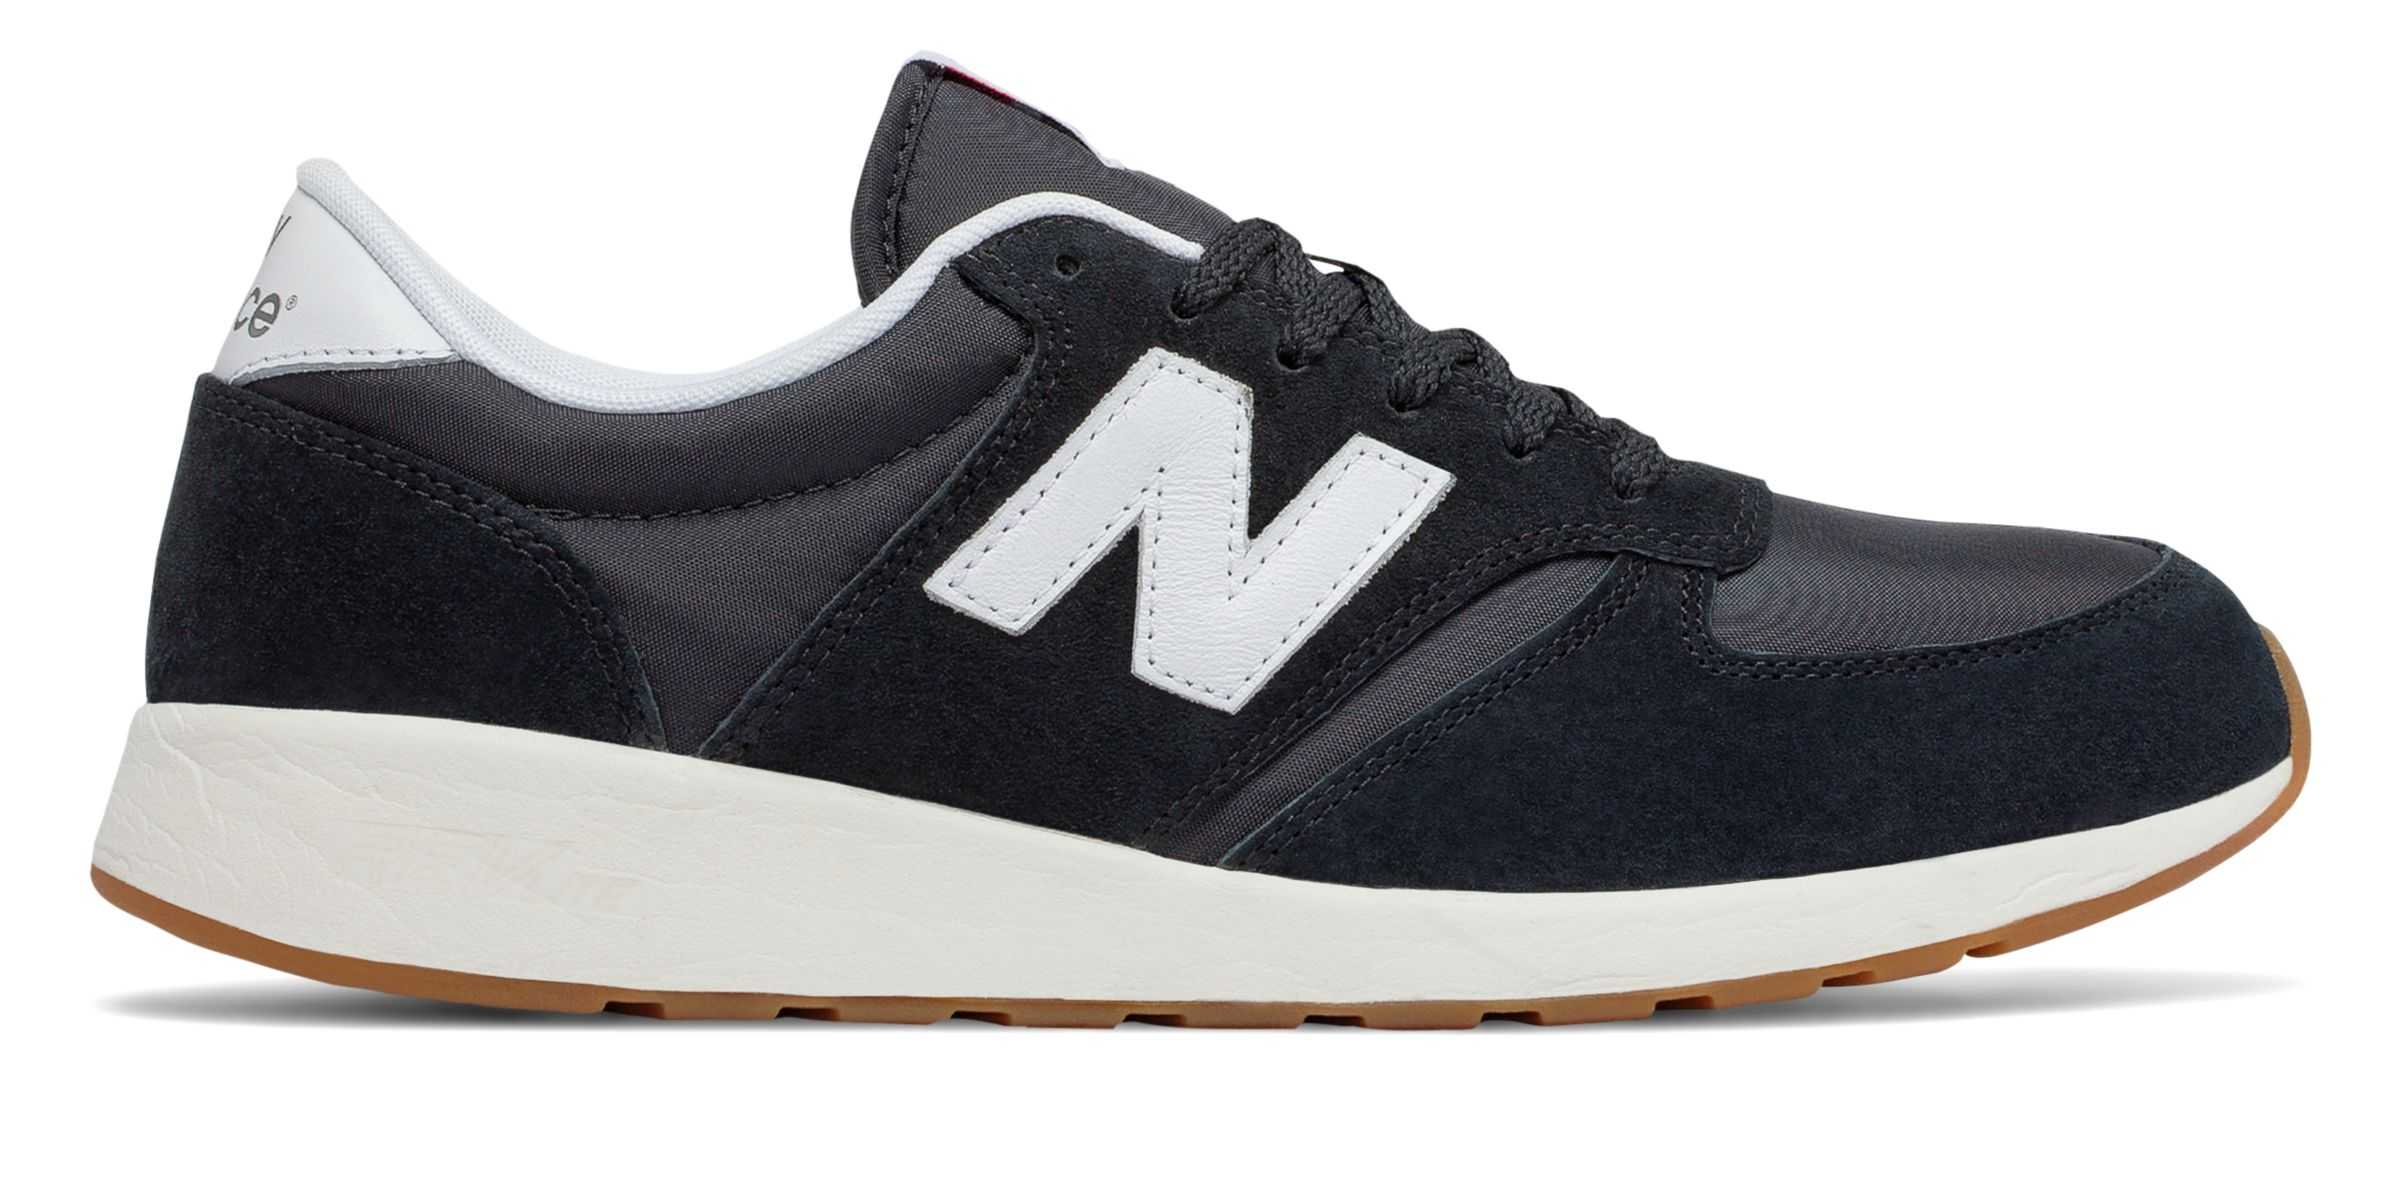 Click here for New Balance 420 Re-Engineered Suede Mens Sport Style MRL420SD prices